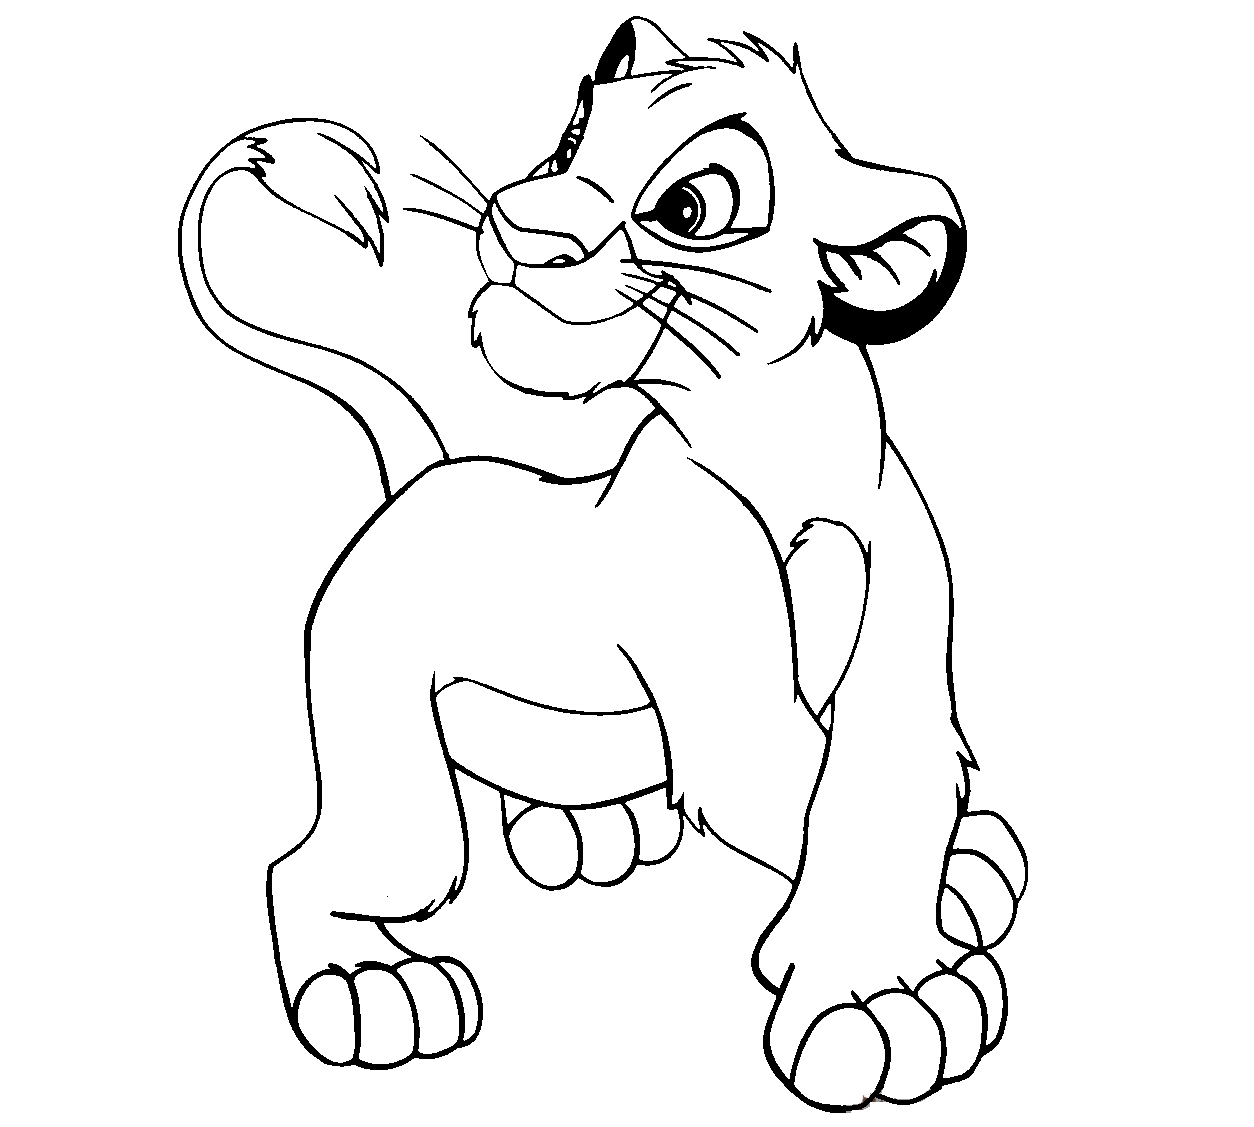 Colouring pages disney a4 : Cartoon images to draw with colour impremedia